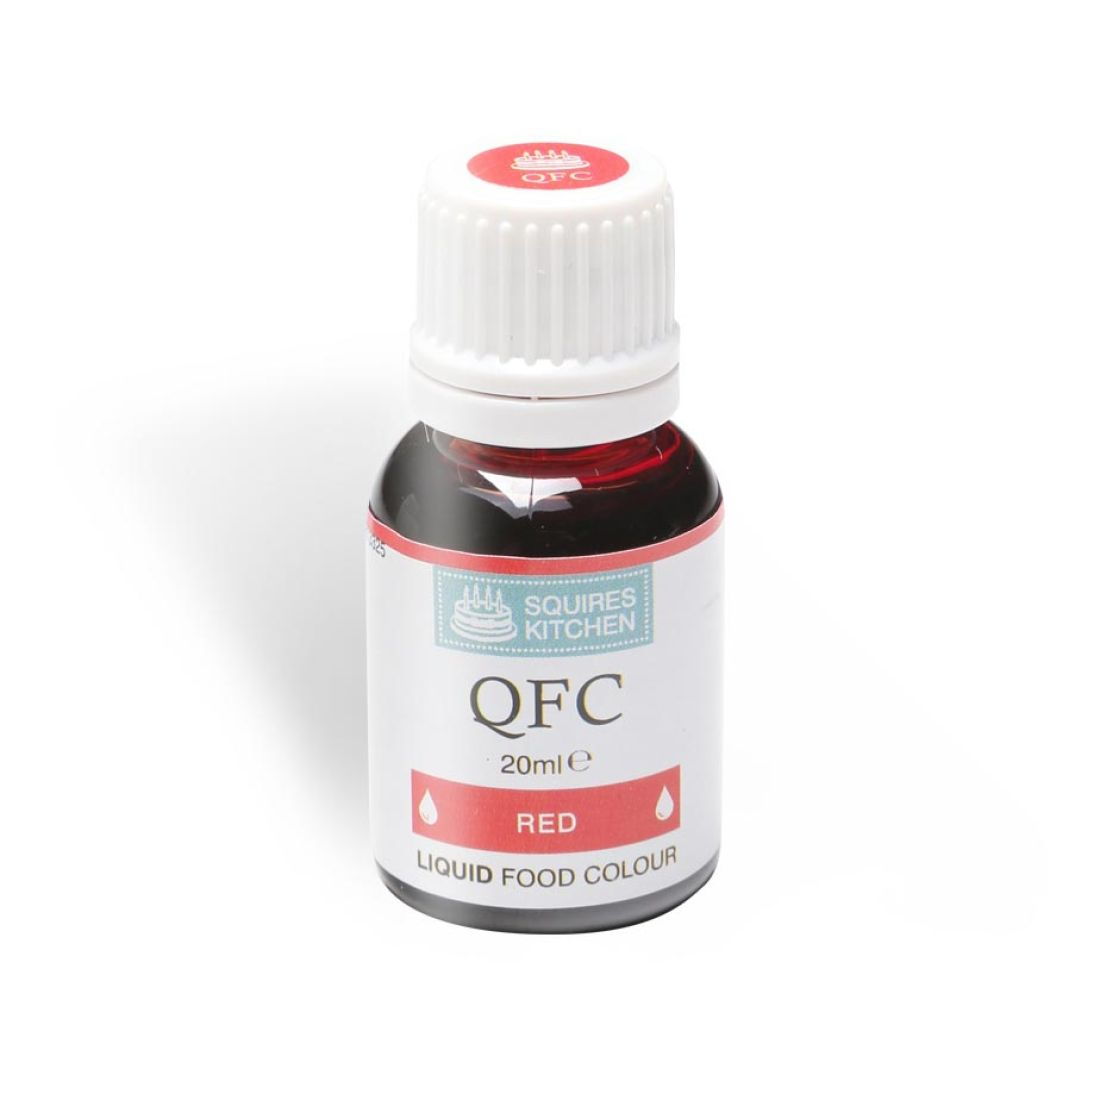 SK QFC Quality Food Colour Liquid Red 20ml | Squires Kitchen Shop